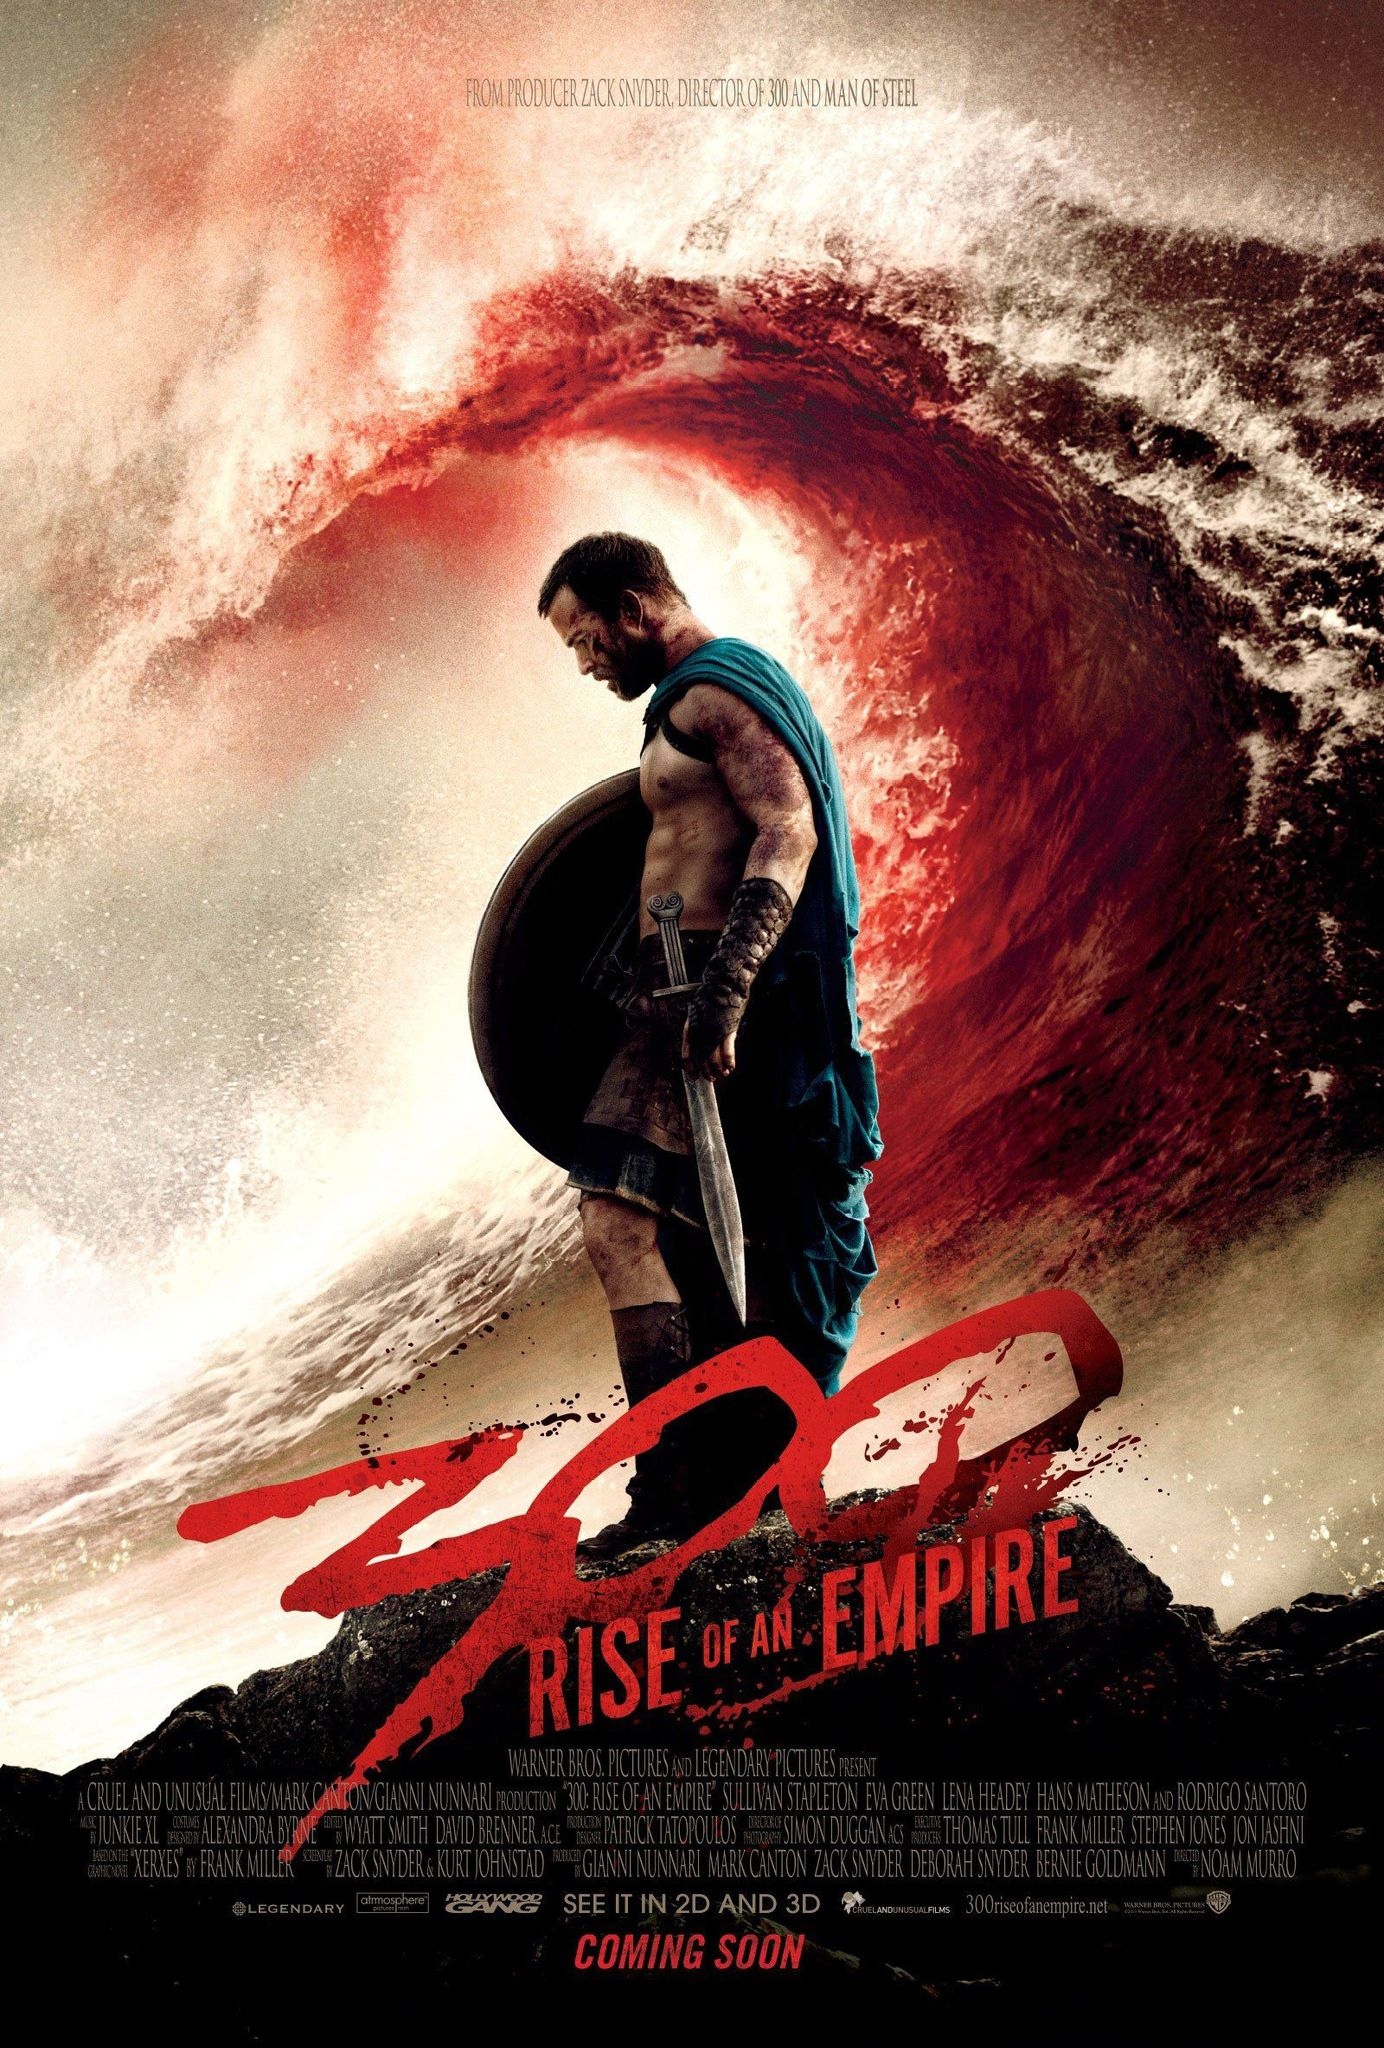 [18+] 300: Rise of an Empire (2014) Bluray 480p 720p 1080p Dual Audio (Hindi + English) DD5.1 | x264 & Hevc 10bit